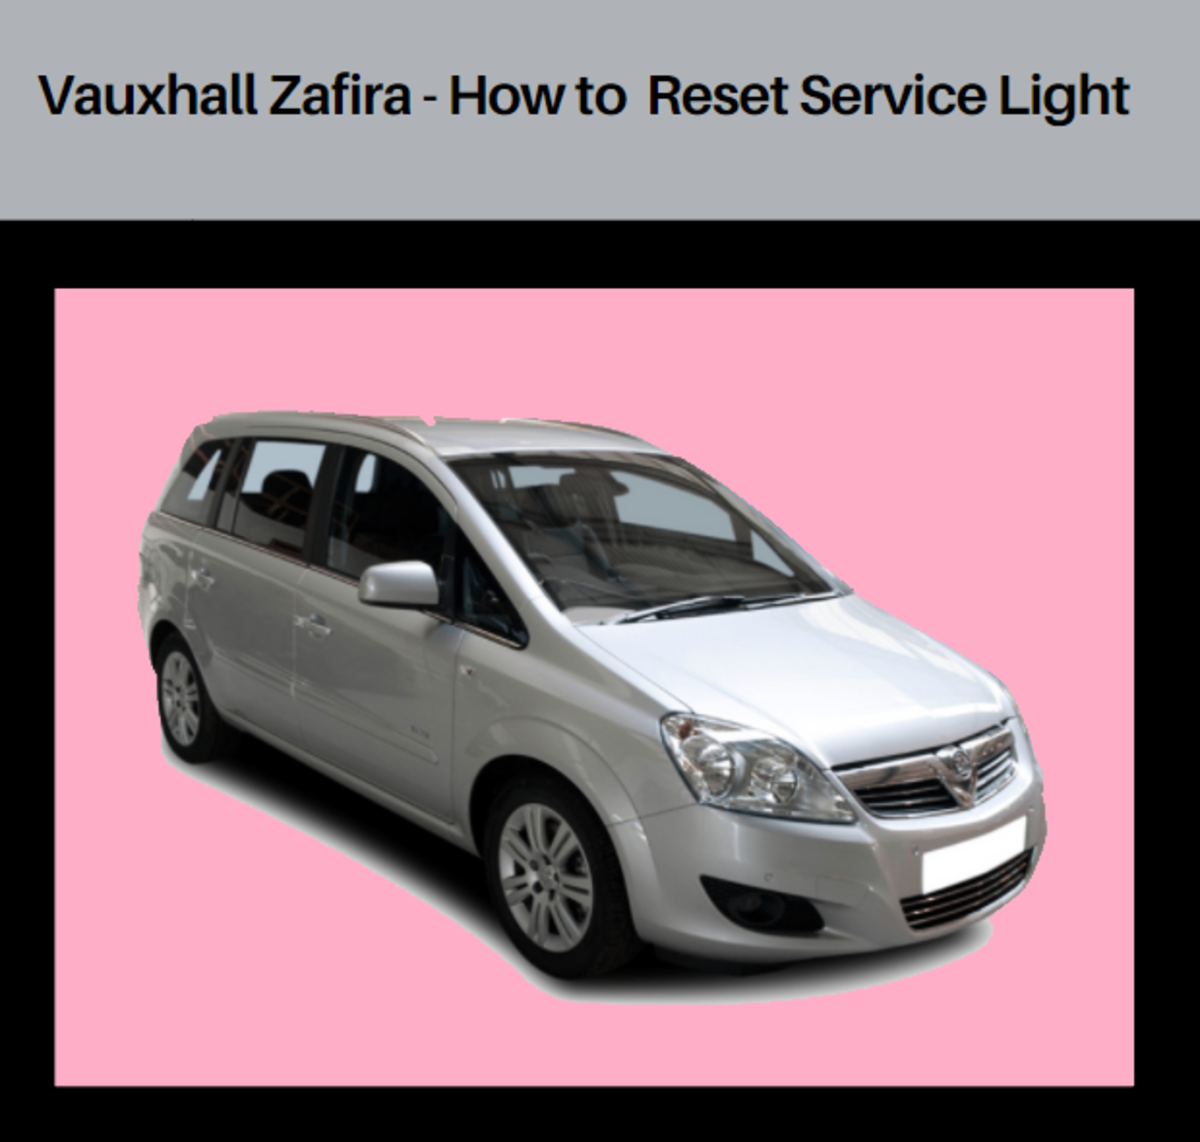 Vauxhall Zafira - How to Reset Service Light